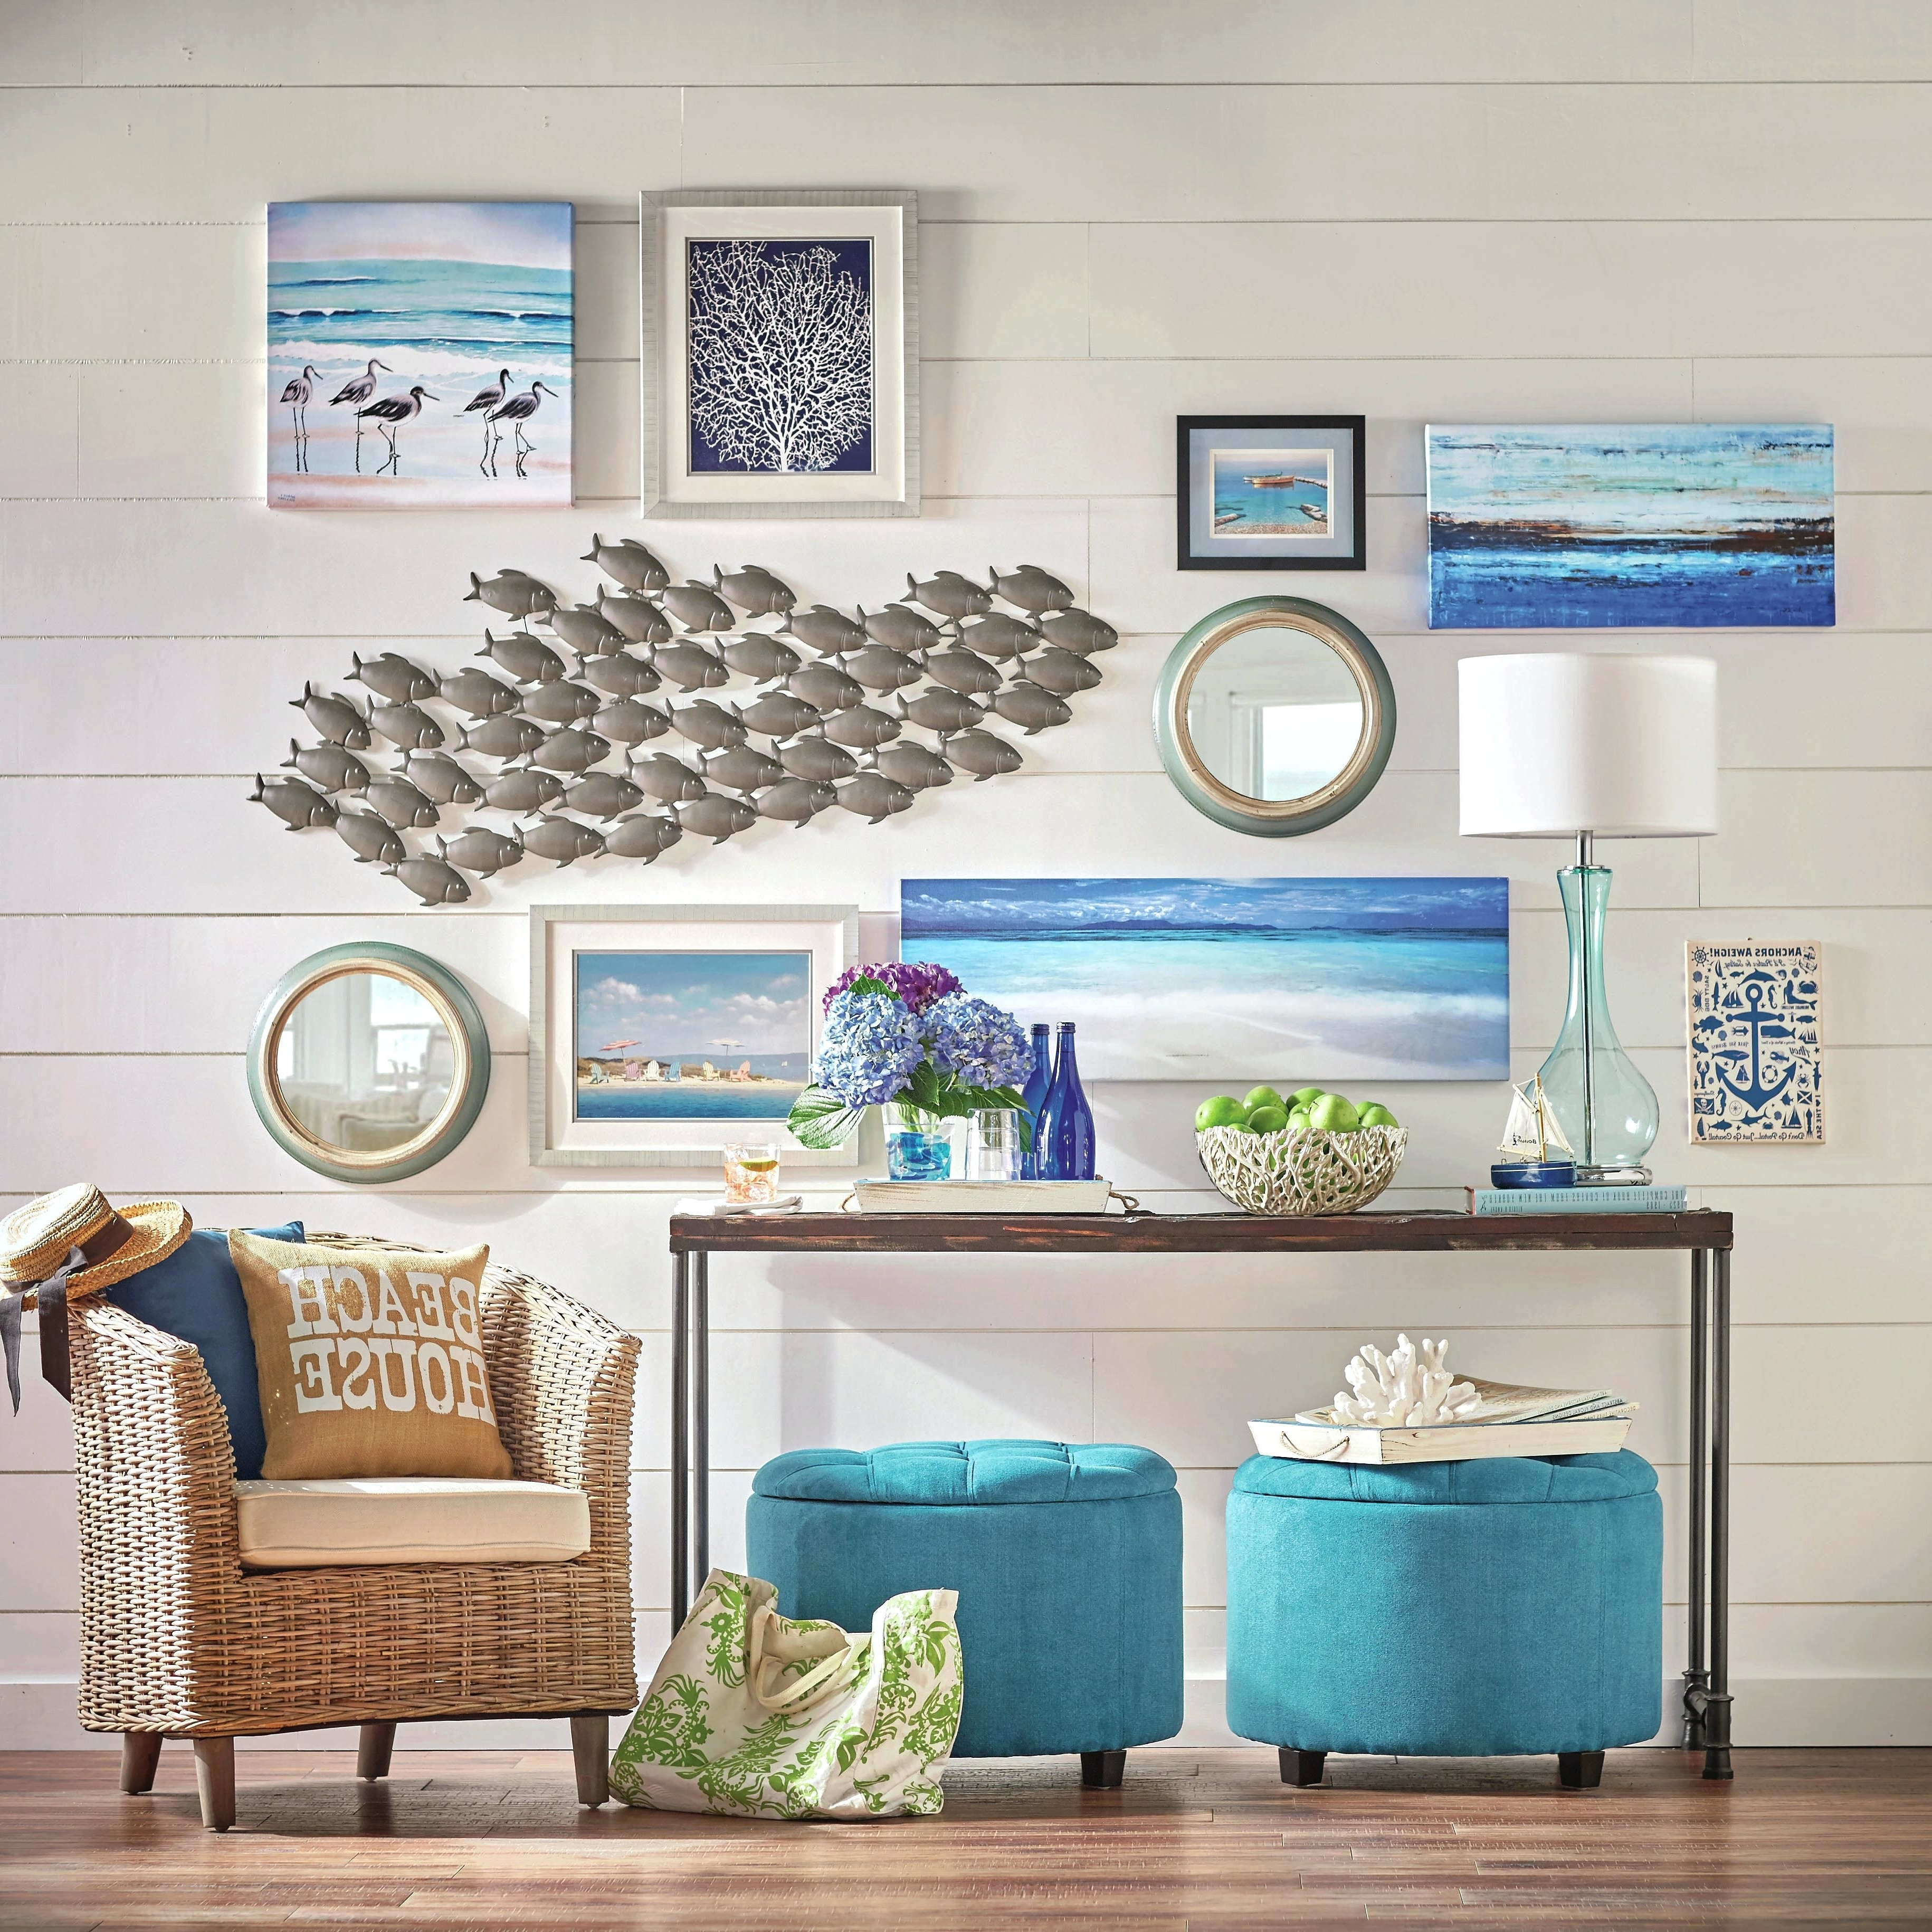 Lovely Lake House Wall Art Images – Hypermallapartments Intended For 2018 Lake House Wall Art (View 10 of 15)